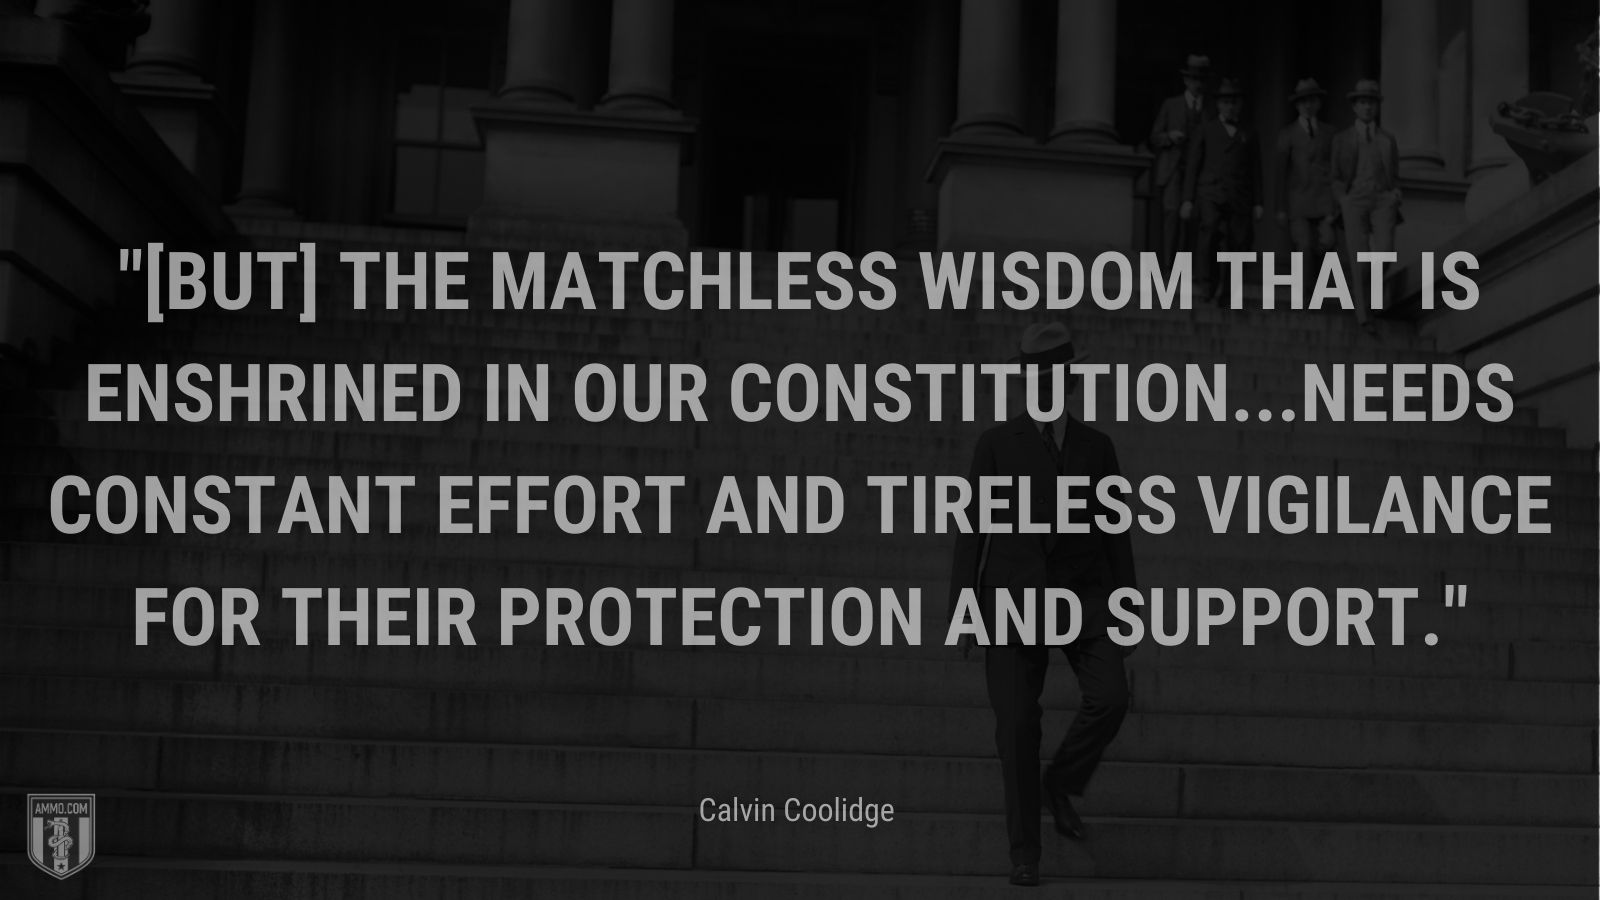 """""""[But] the matchless wisdom that is enshrined in our Constitution...needs constant effort and tireless vigilance for their protection and support."""" - Calvin Coolidge"""